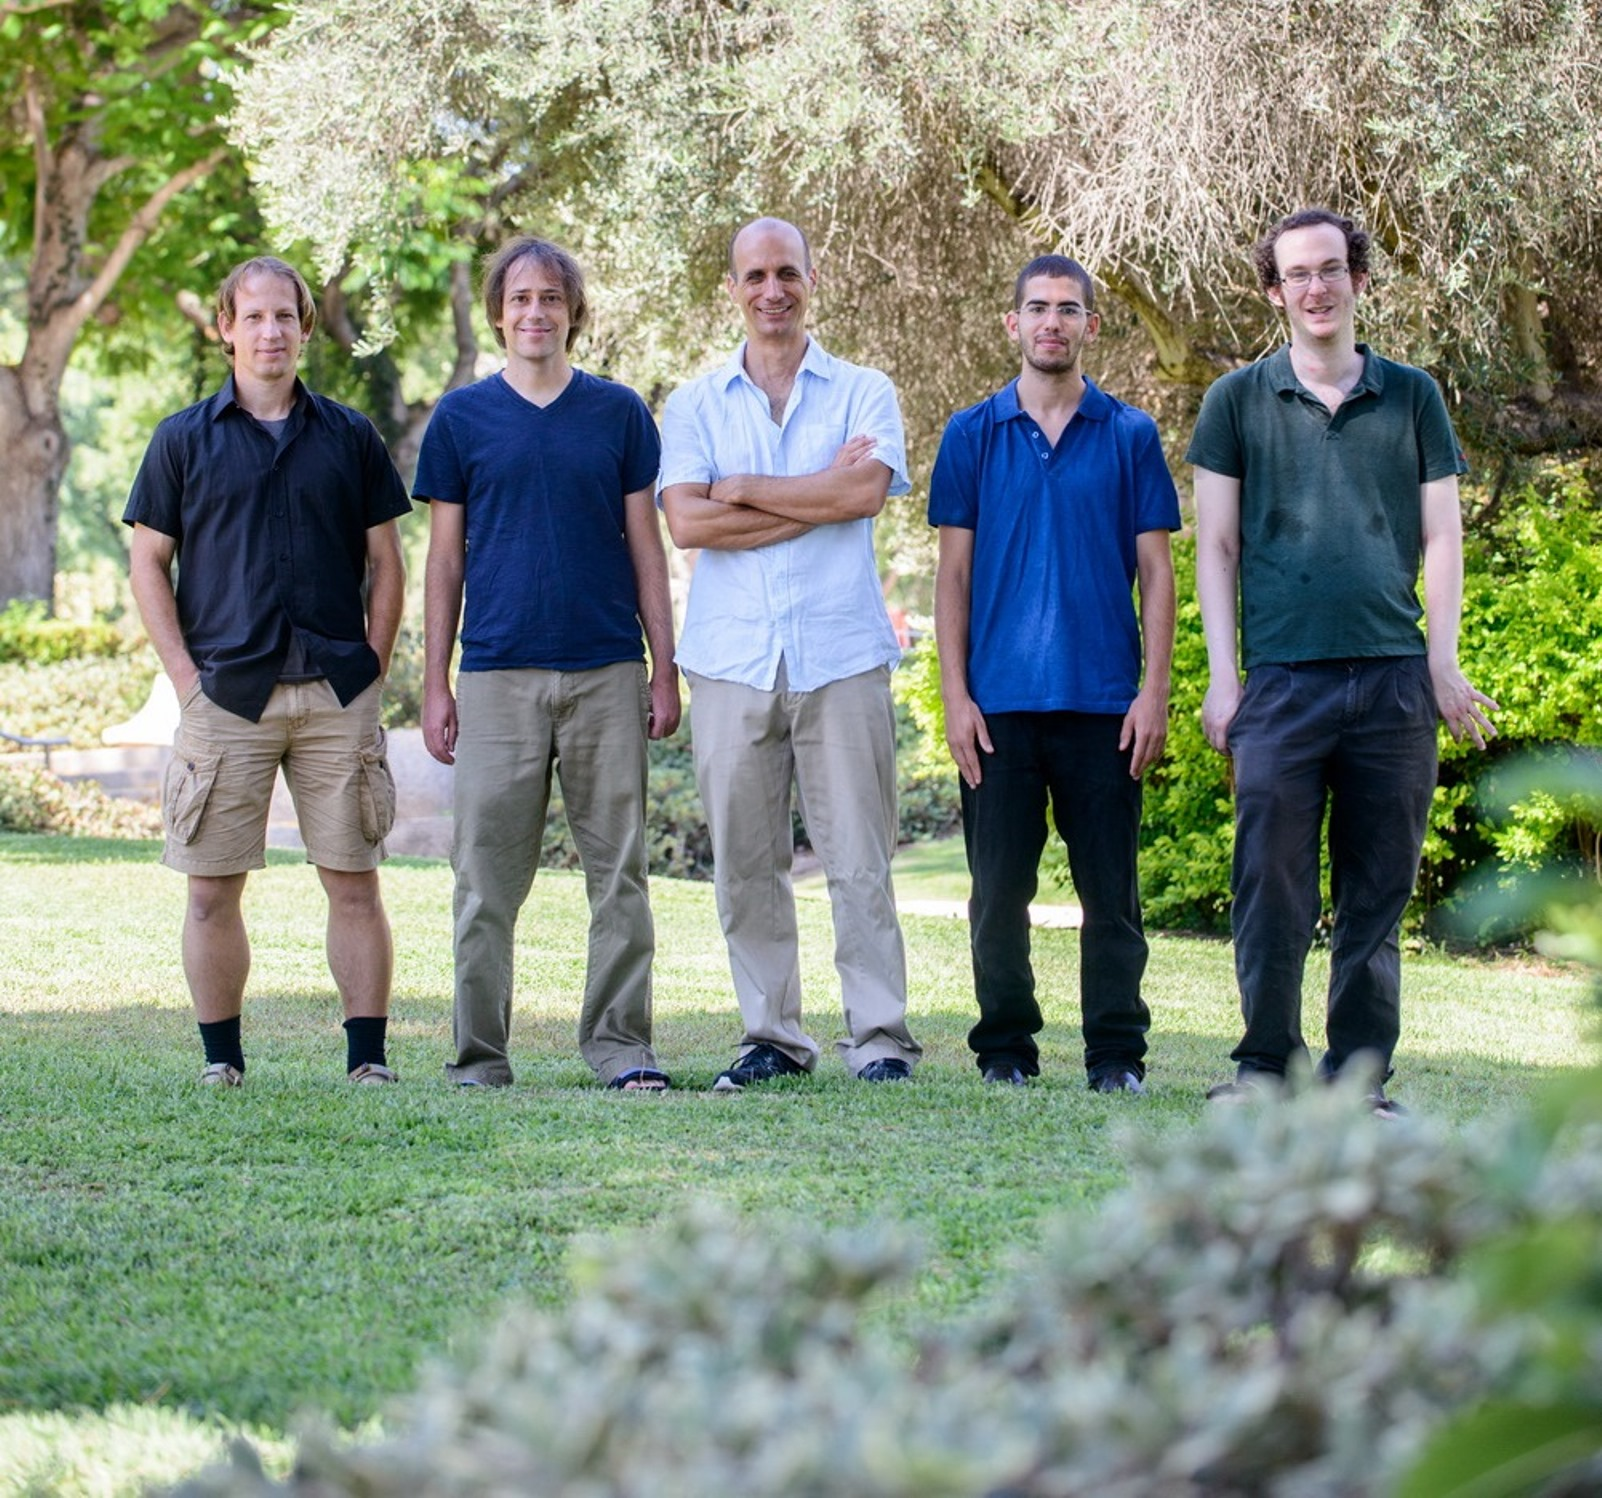 From left, Weizmann researchers Ehud Fonio, Ofer Feinerman, Prof. Nir Gov, Aviram Gelblum and Itai Pinkoviezky. Photo courtesy of Weizmann Institute